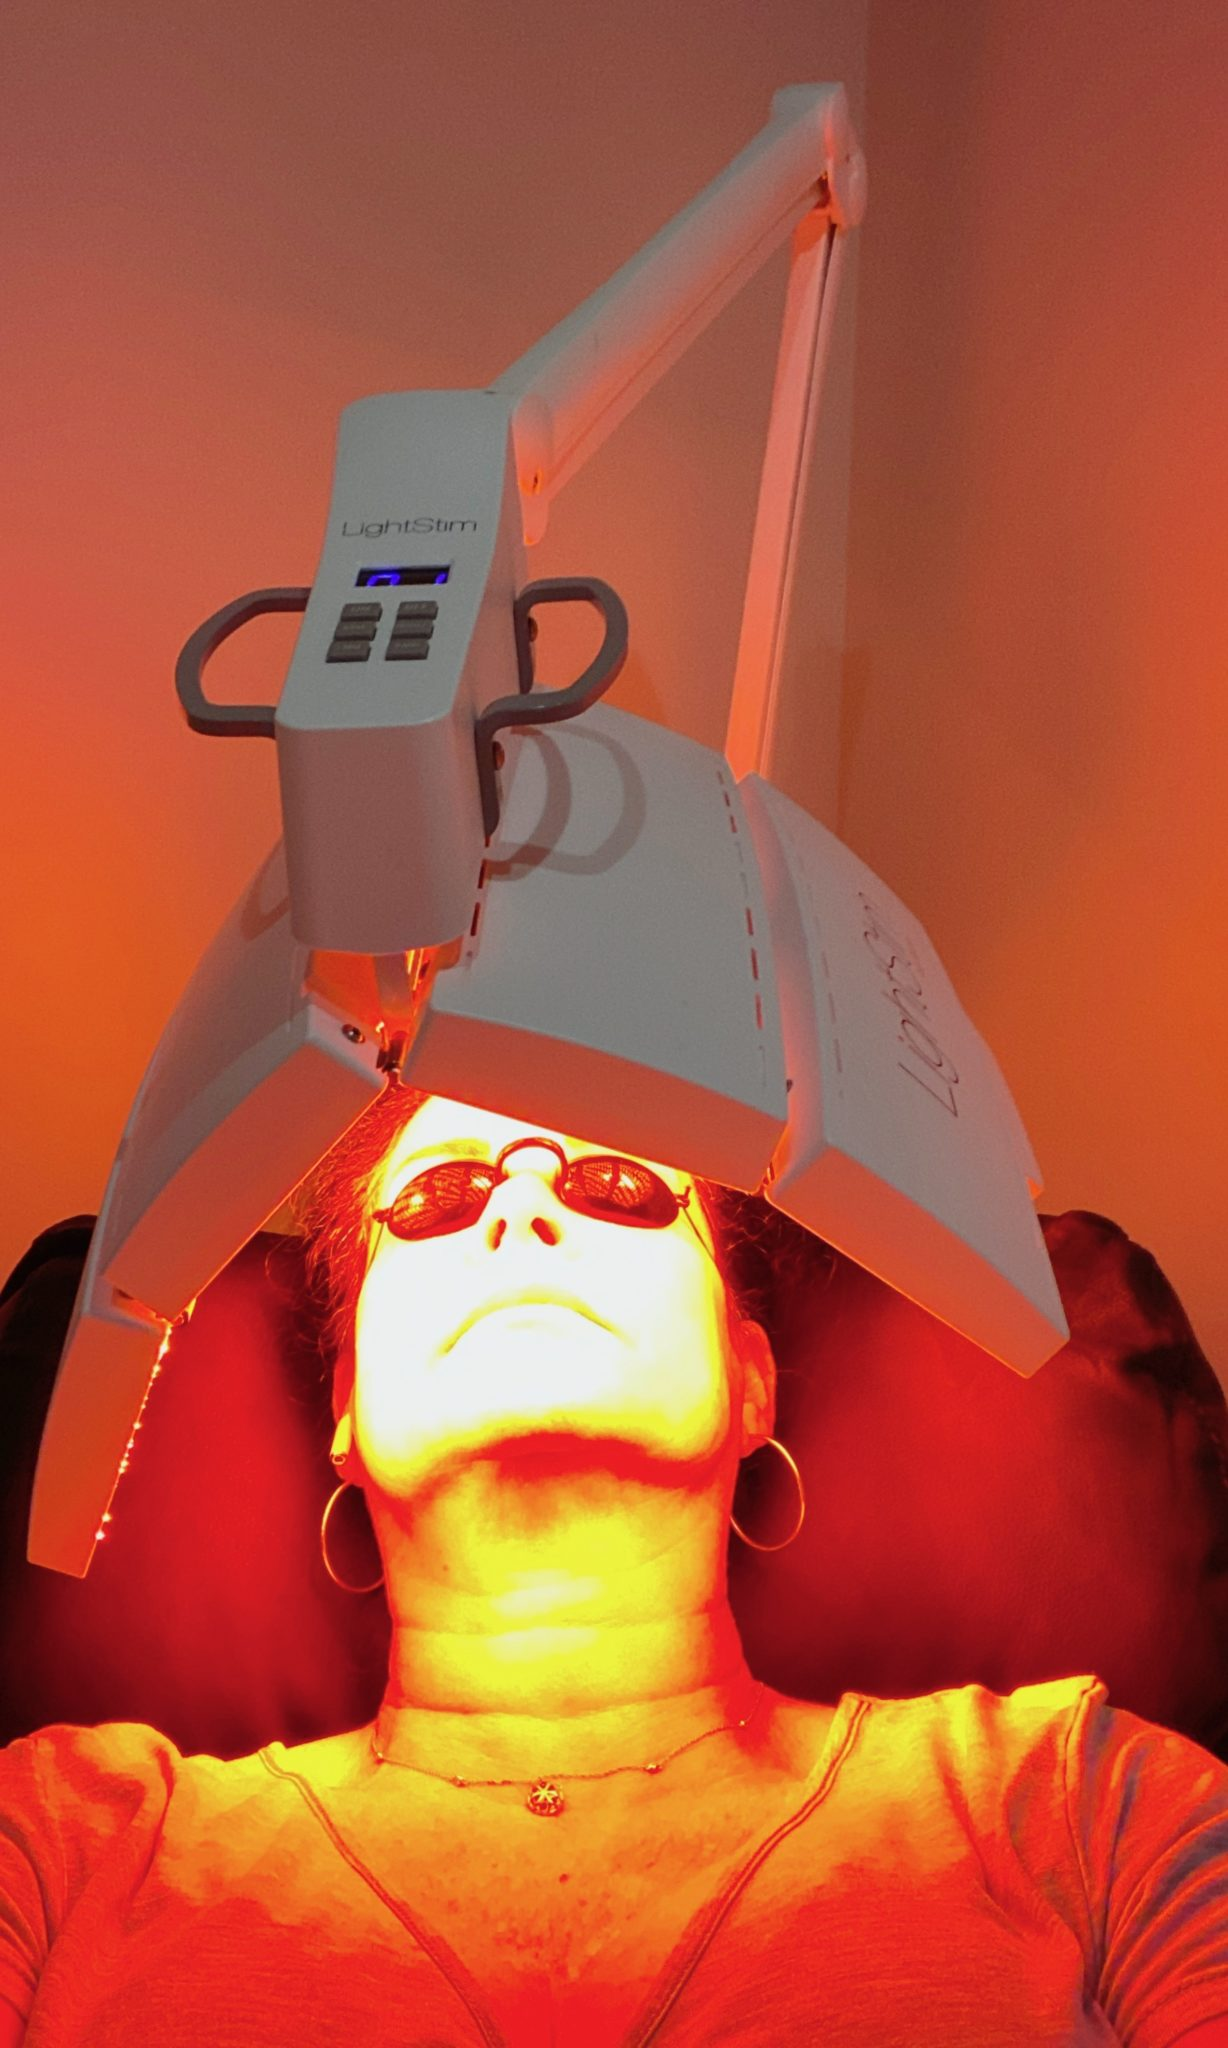 red led light for anti-aging